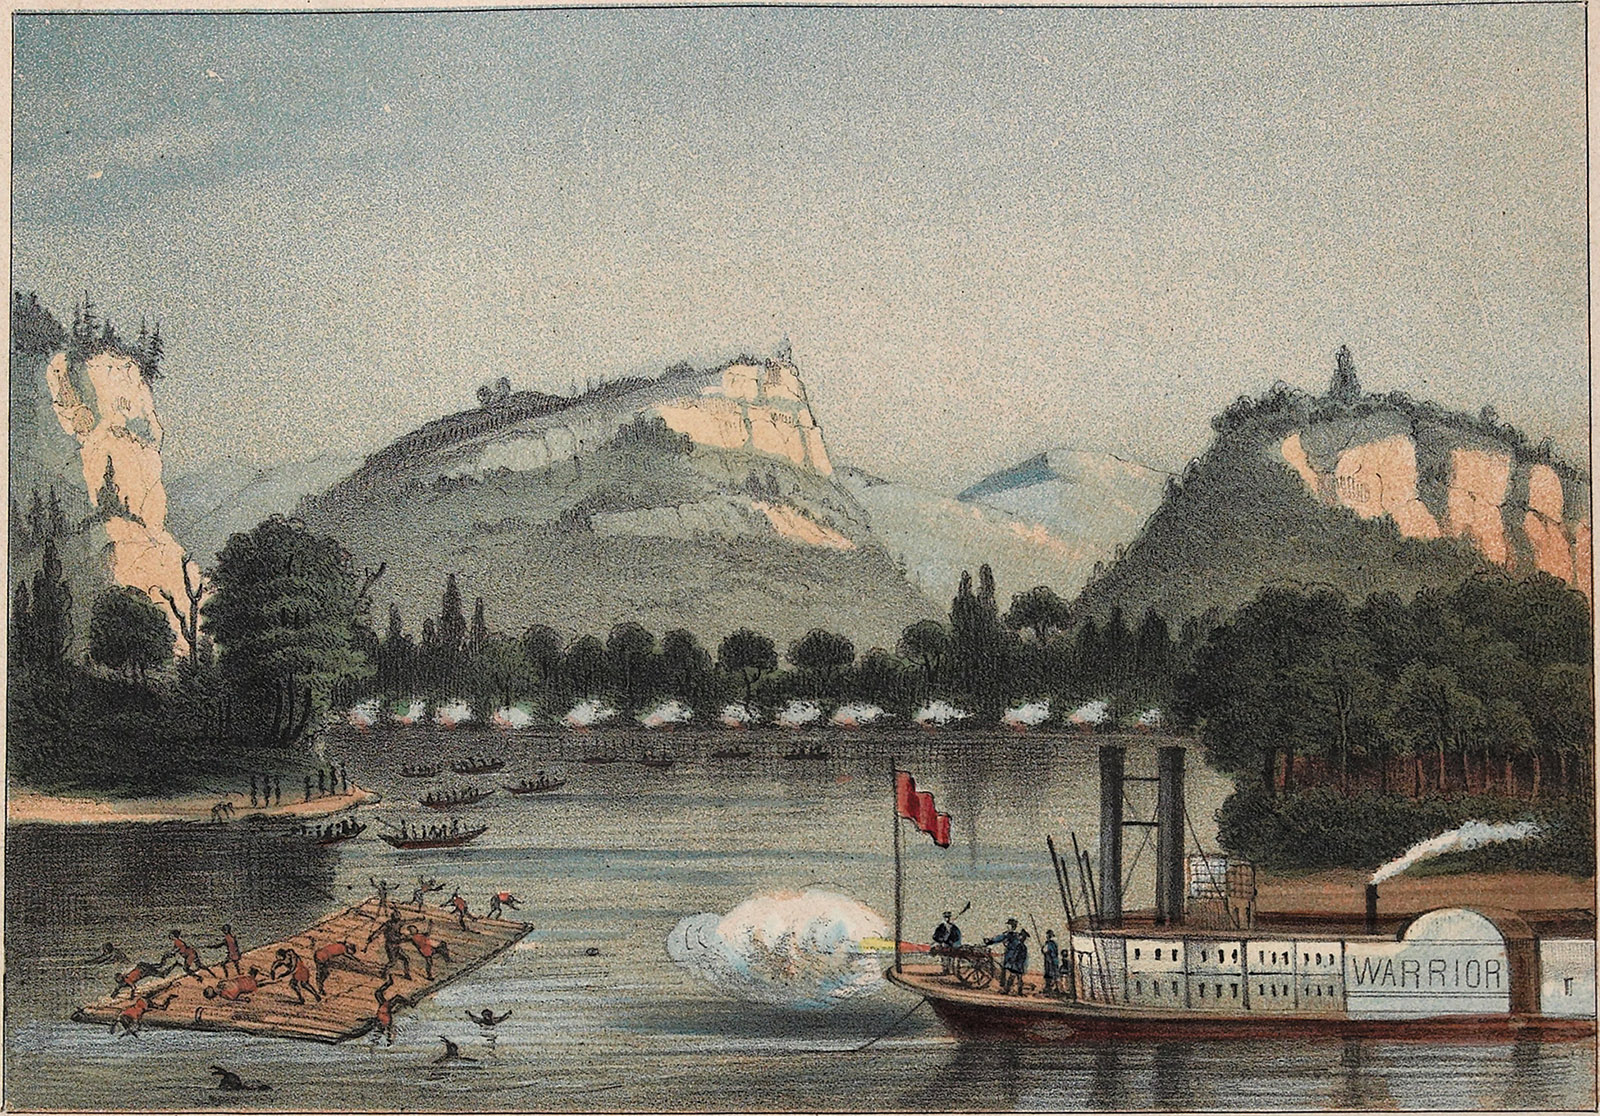 Illustration of a massacre of Sauks and Mesquakies crossing the Mississippi River by a cannon on US steamship Warrior, 1857